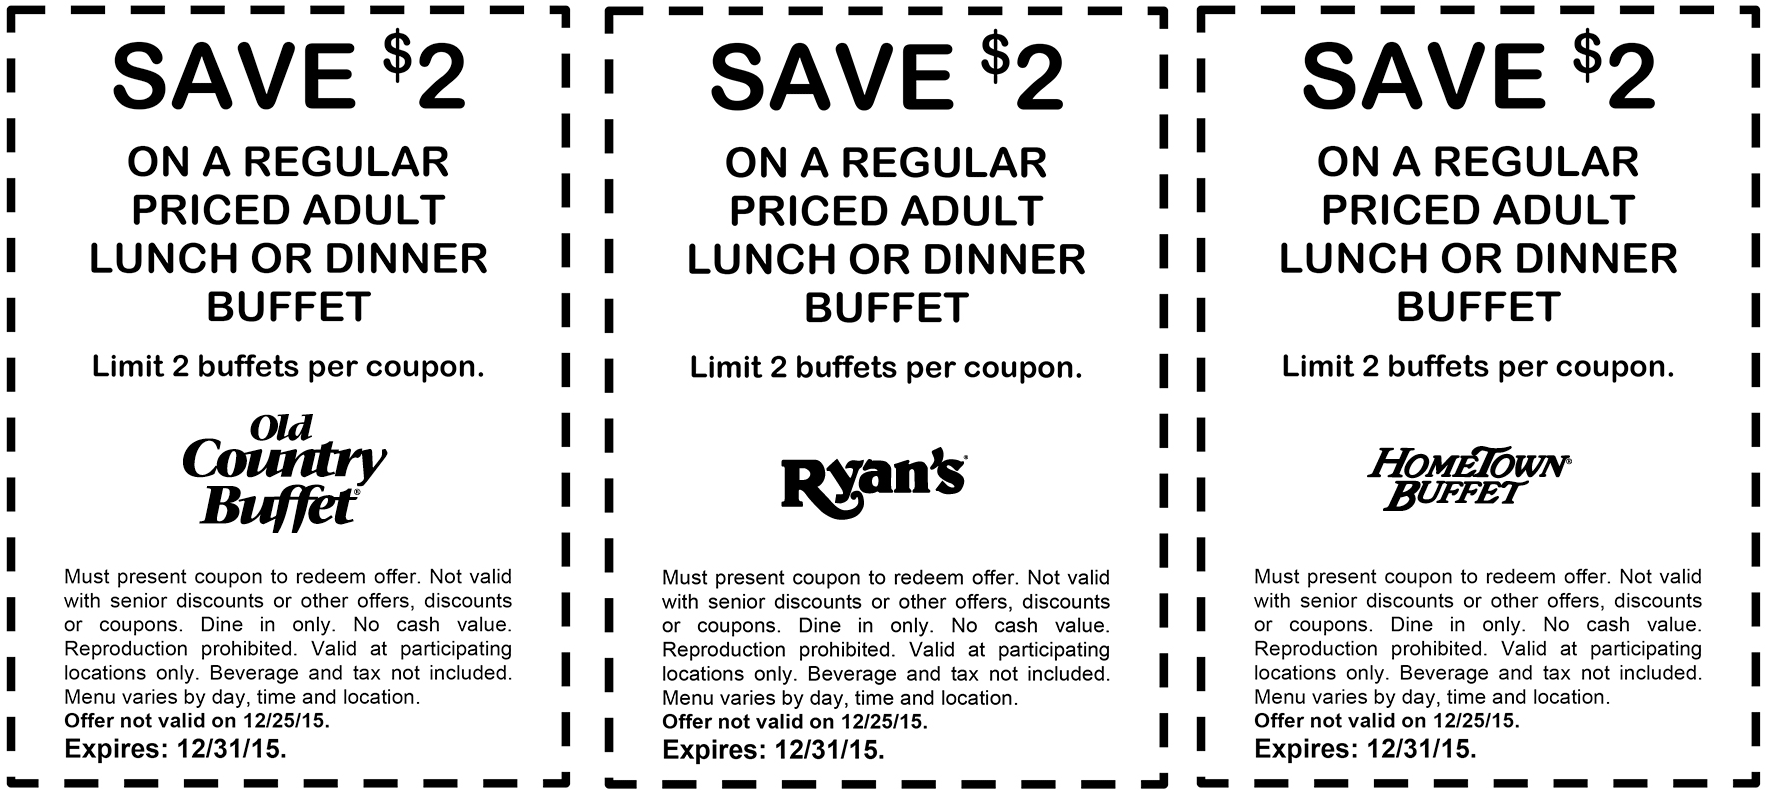 Old Country Buffet Coupon May 2017 $2 off your buffet at Ryans, Hometown Buffet & Old Country Buffet